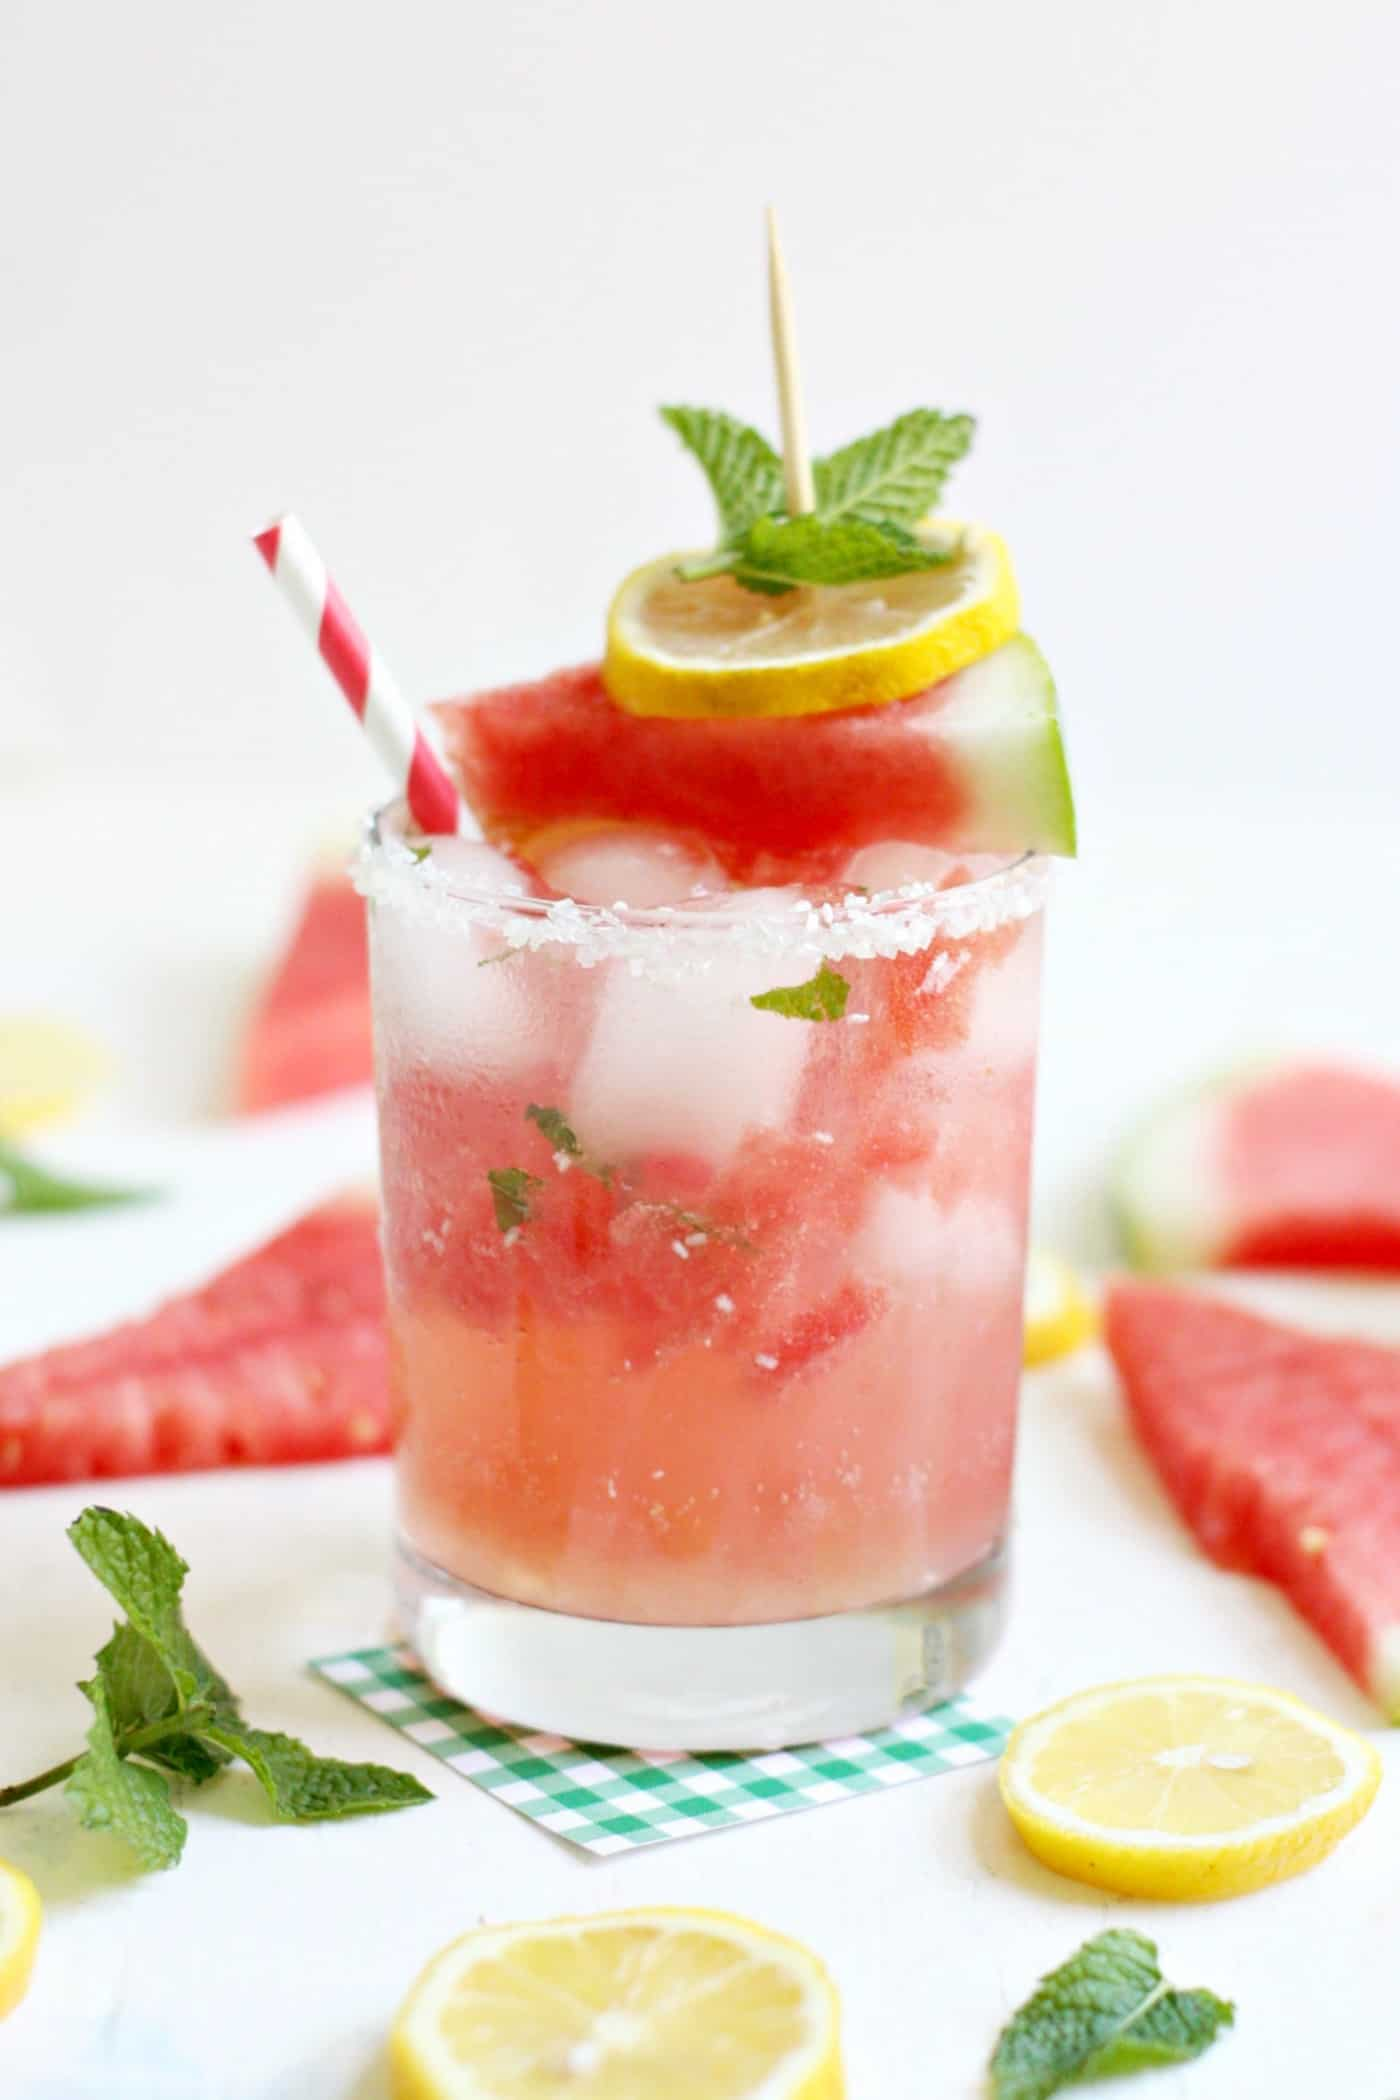 This homemade lemonade recipe combines some of the most delicious flavors of summer: sweet watermelon, tart lemon, and the cool flavor of mint!